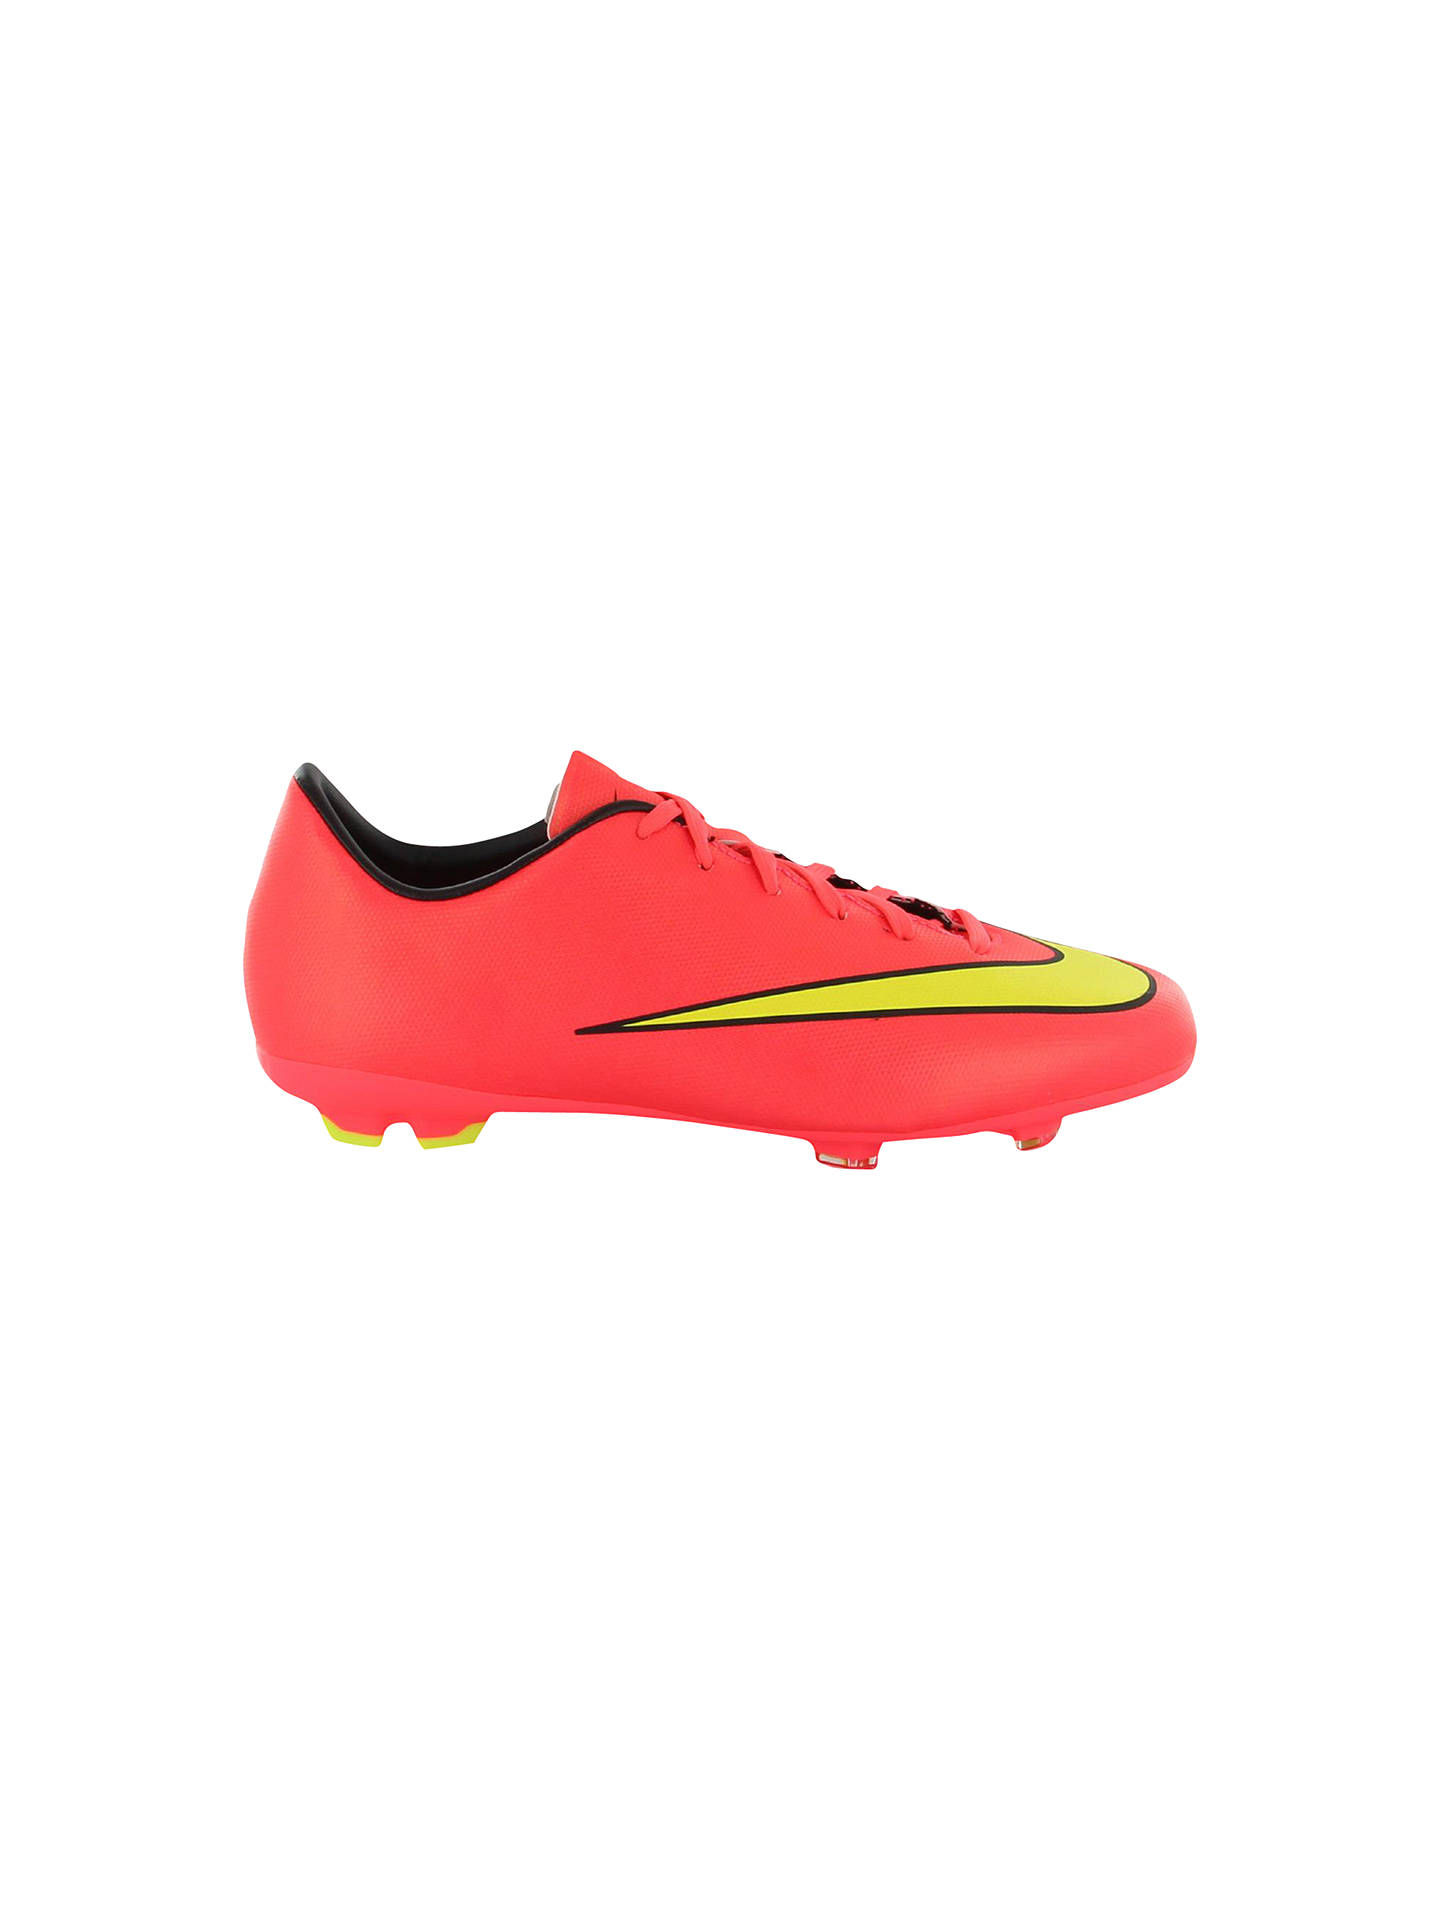 best service f21a0 5cee8 Nike Mercurial Victory V FG Football Boots, Neon Pink/Gold ...